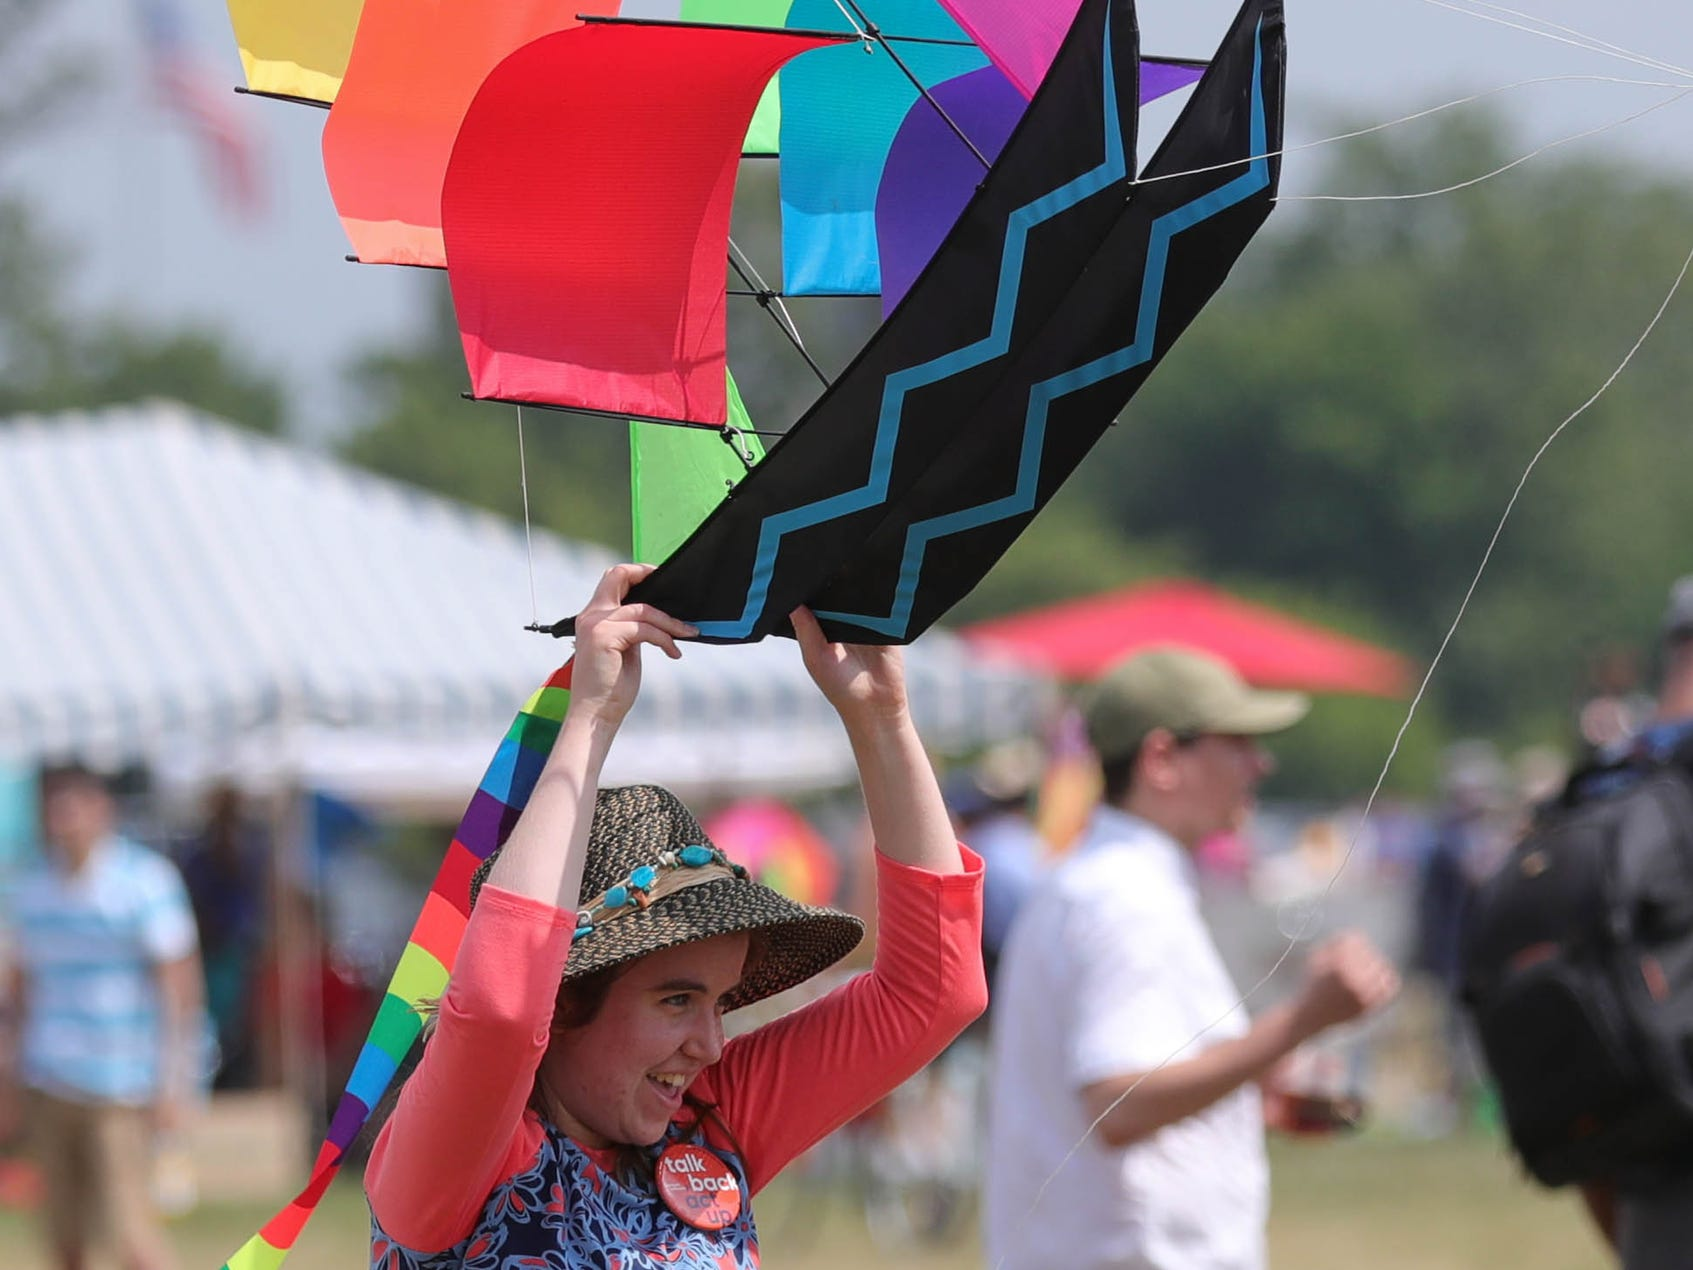 Katie Crombez tries to get her kite airborne during the Detroit Kite Festival on Belle Isle Sunday, July 15, 2018.